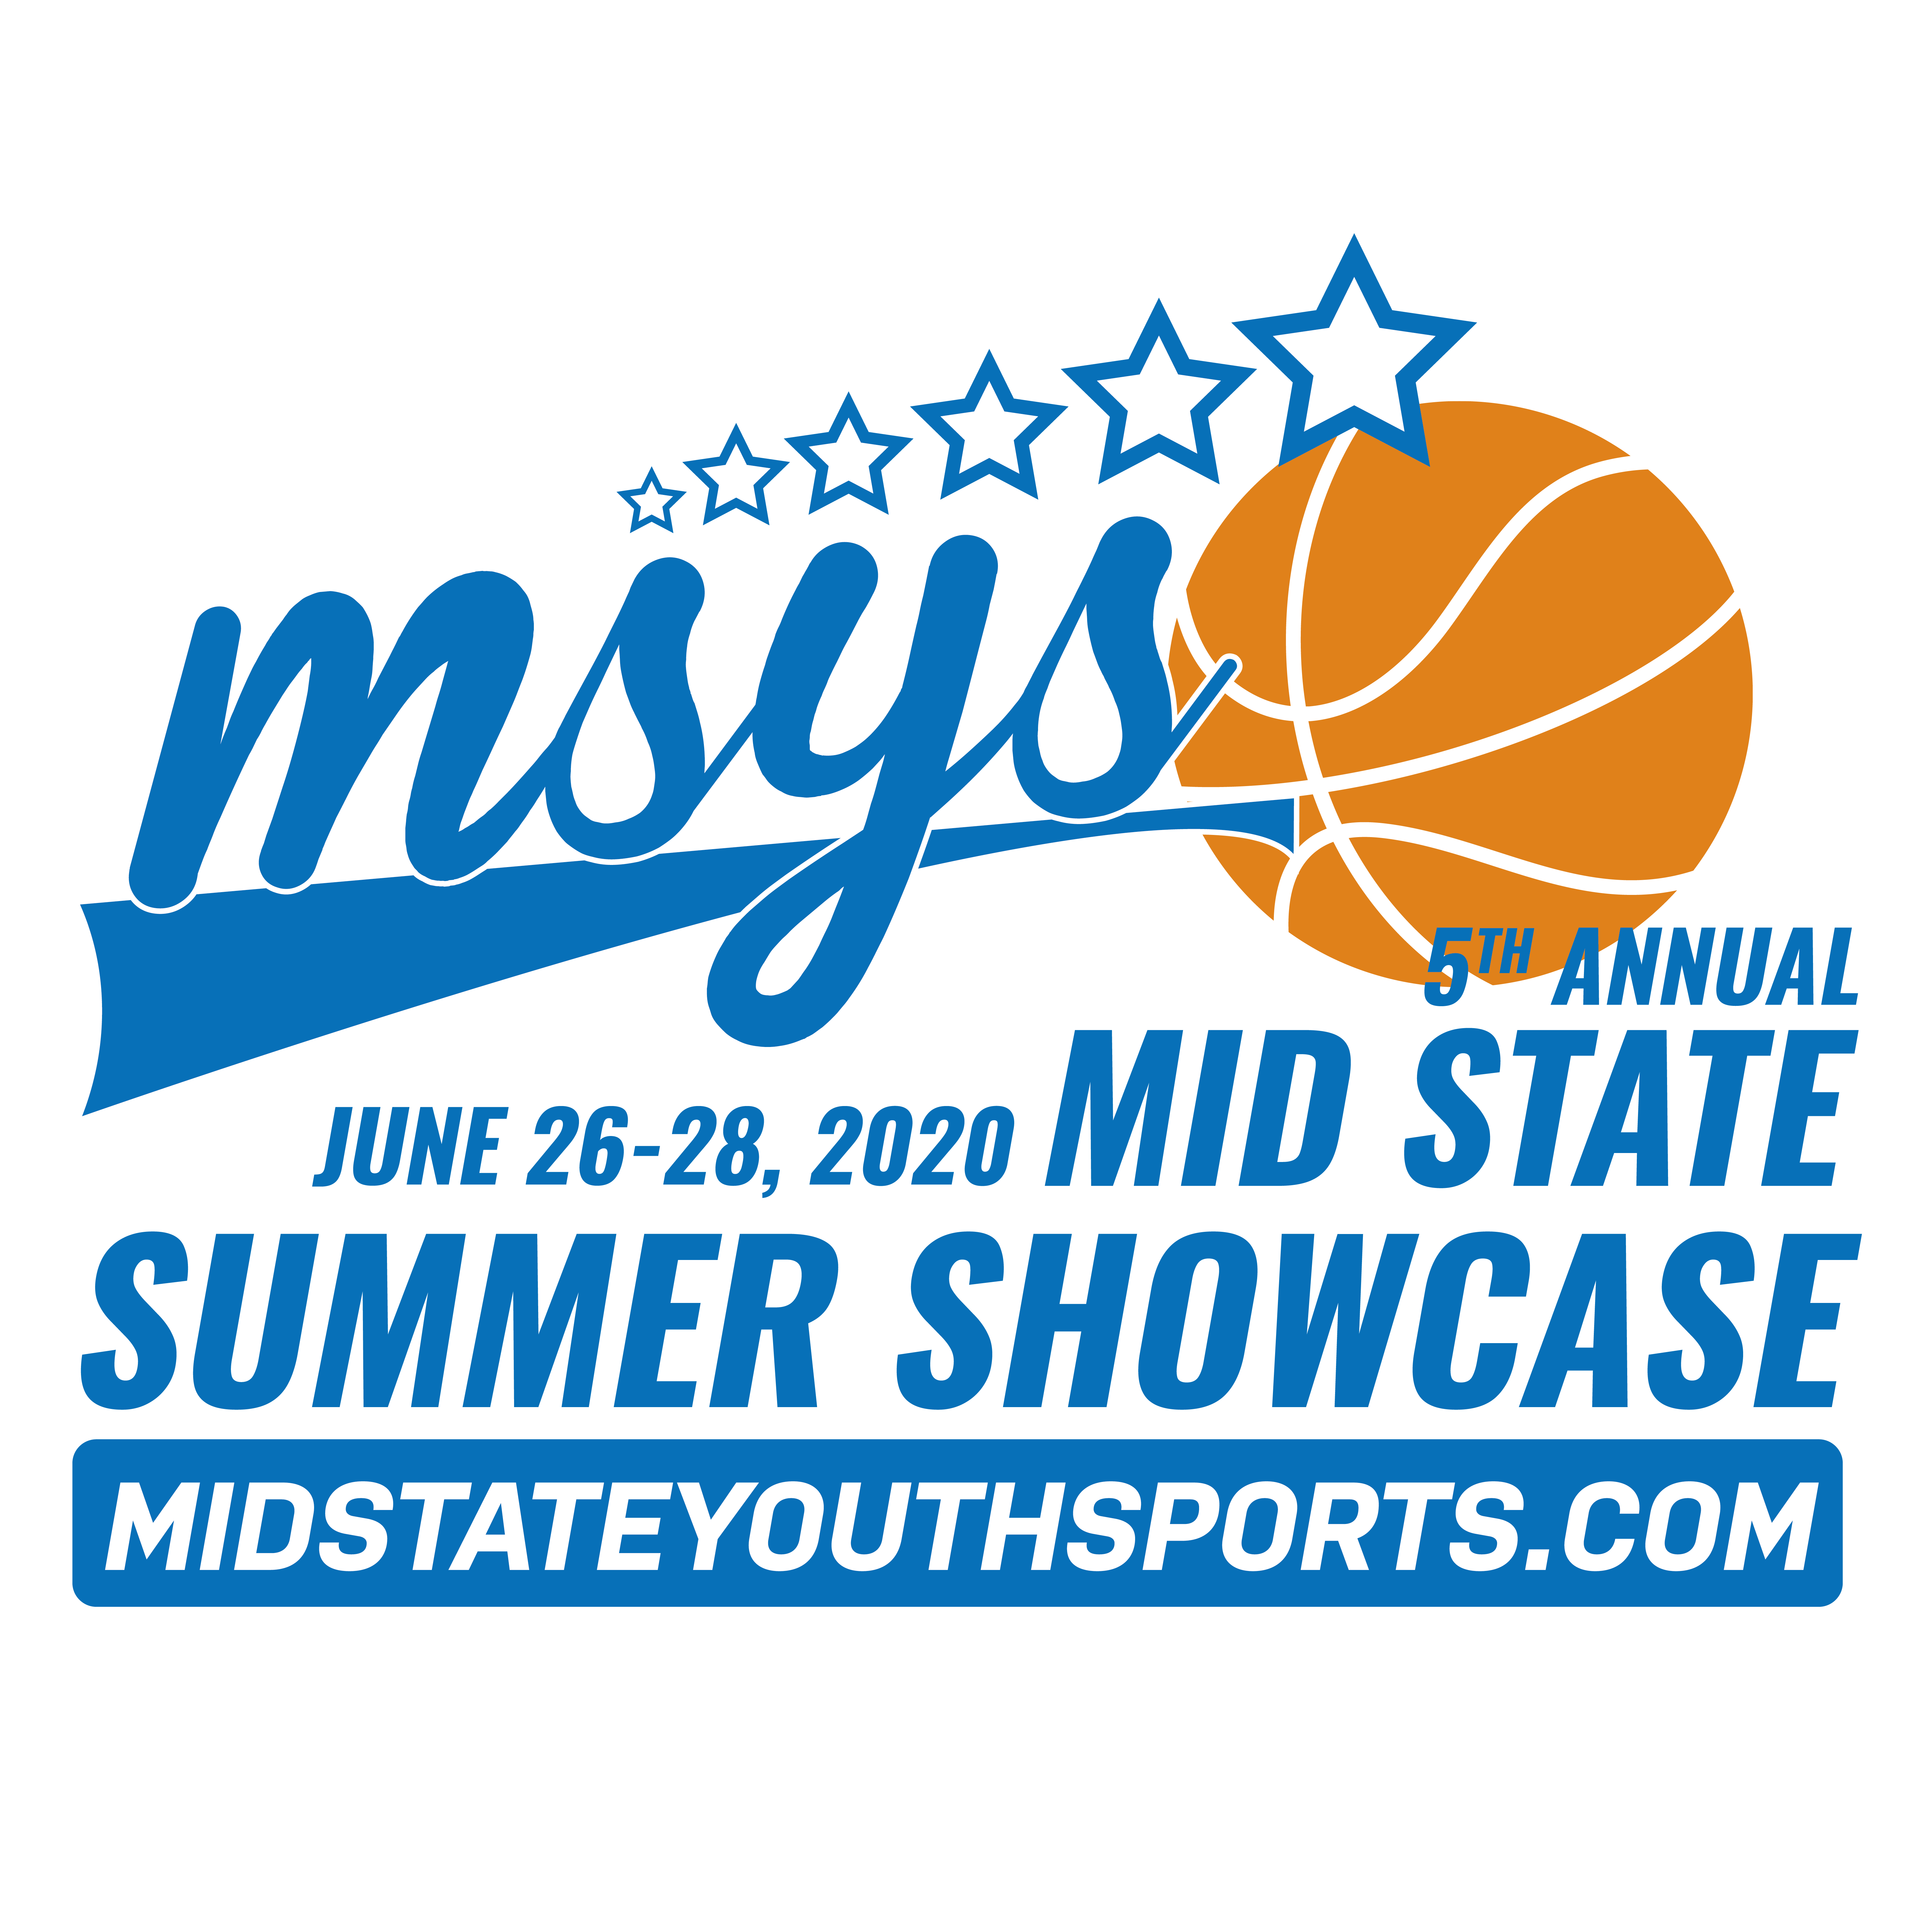 MSYS 5th Annual Mid State Summer Showcase